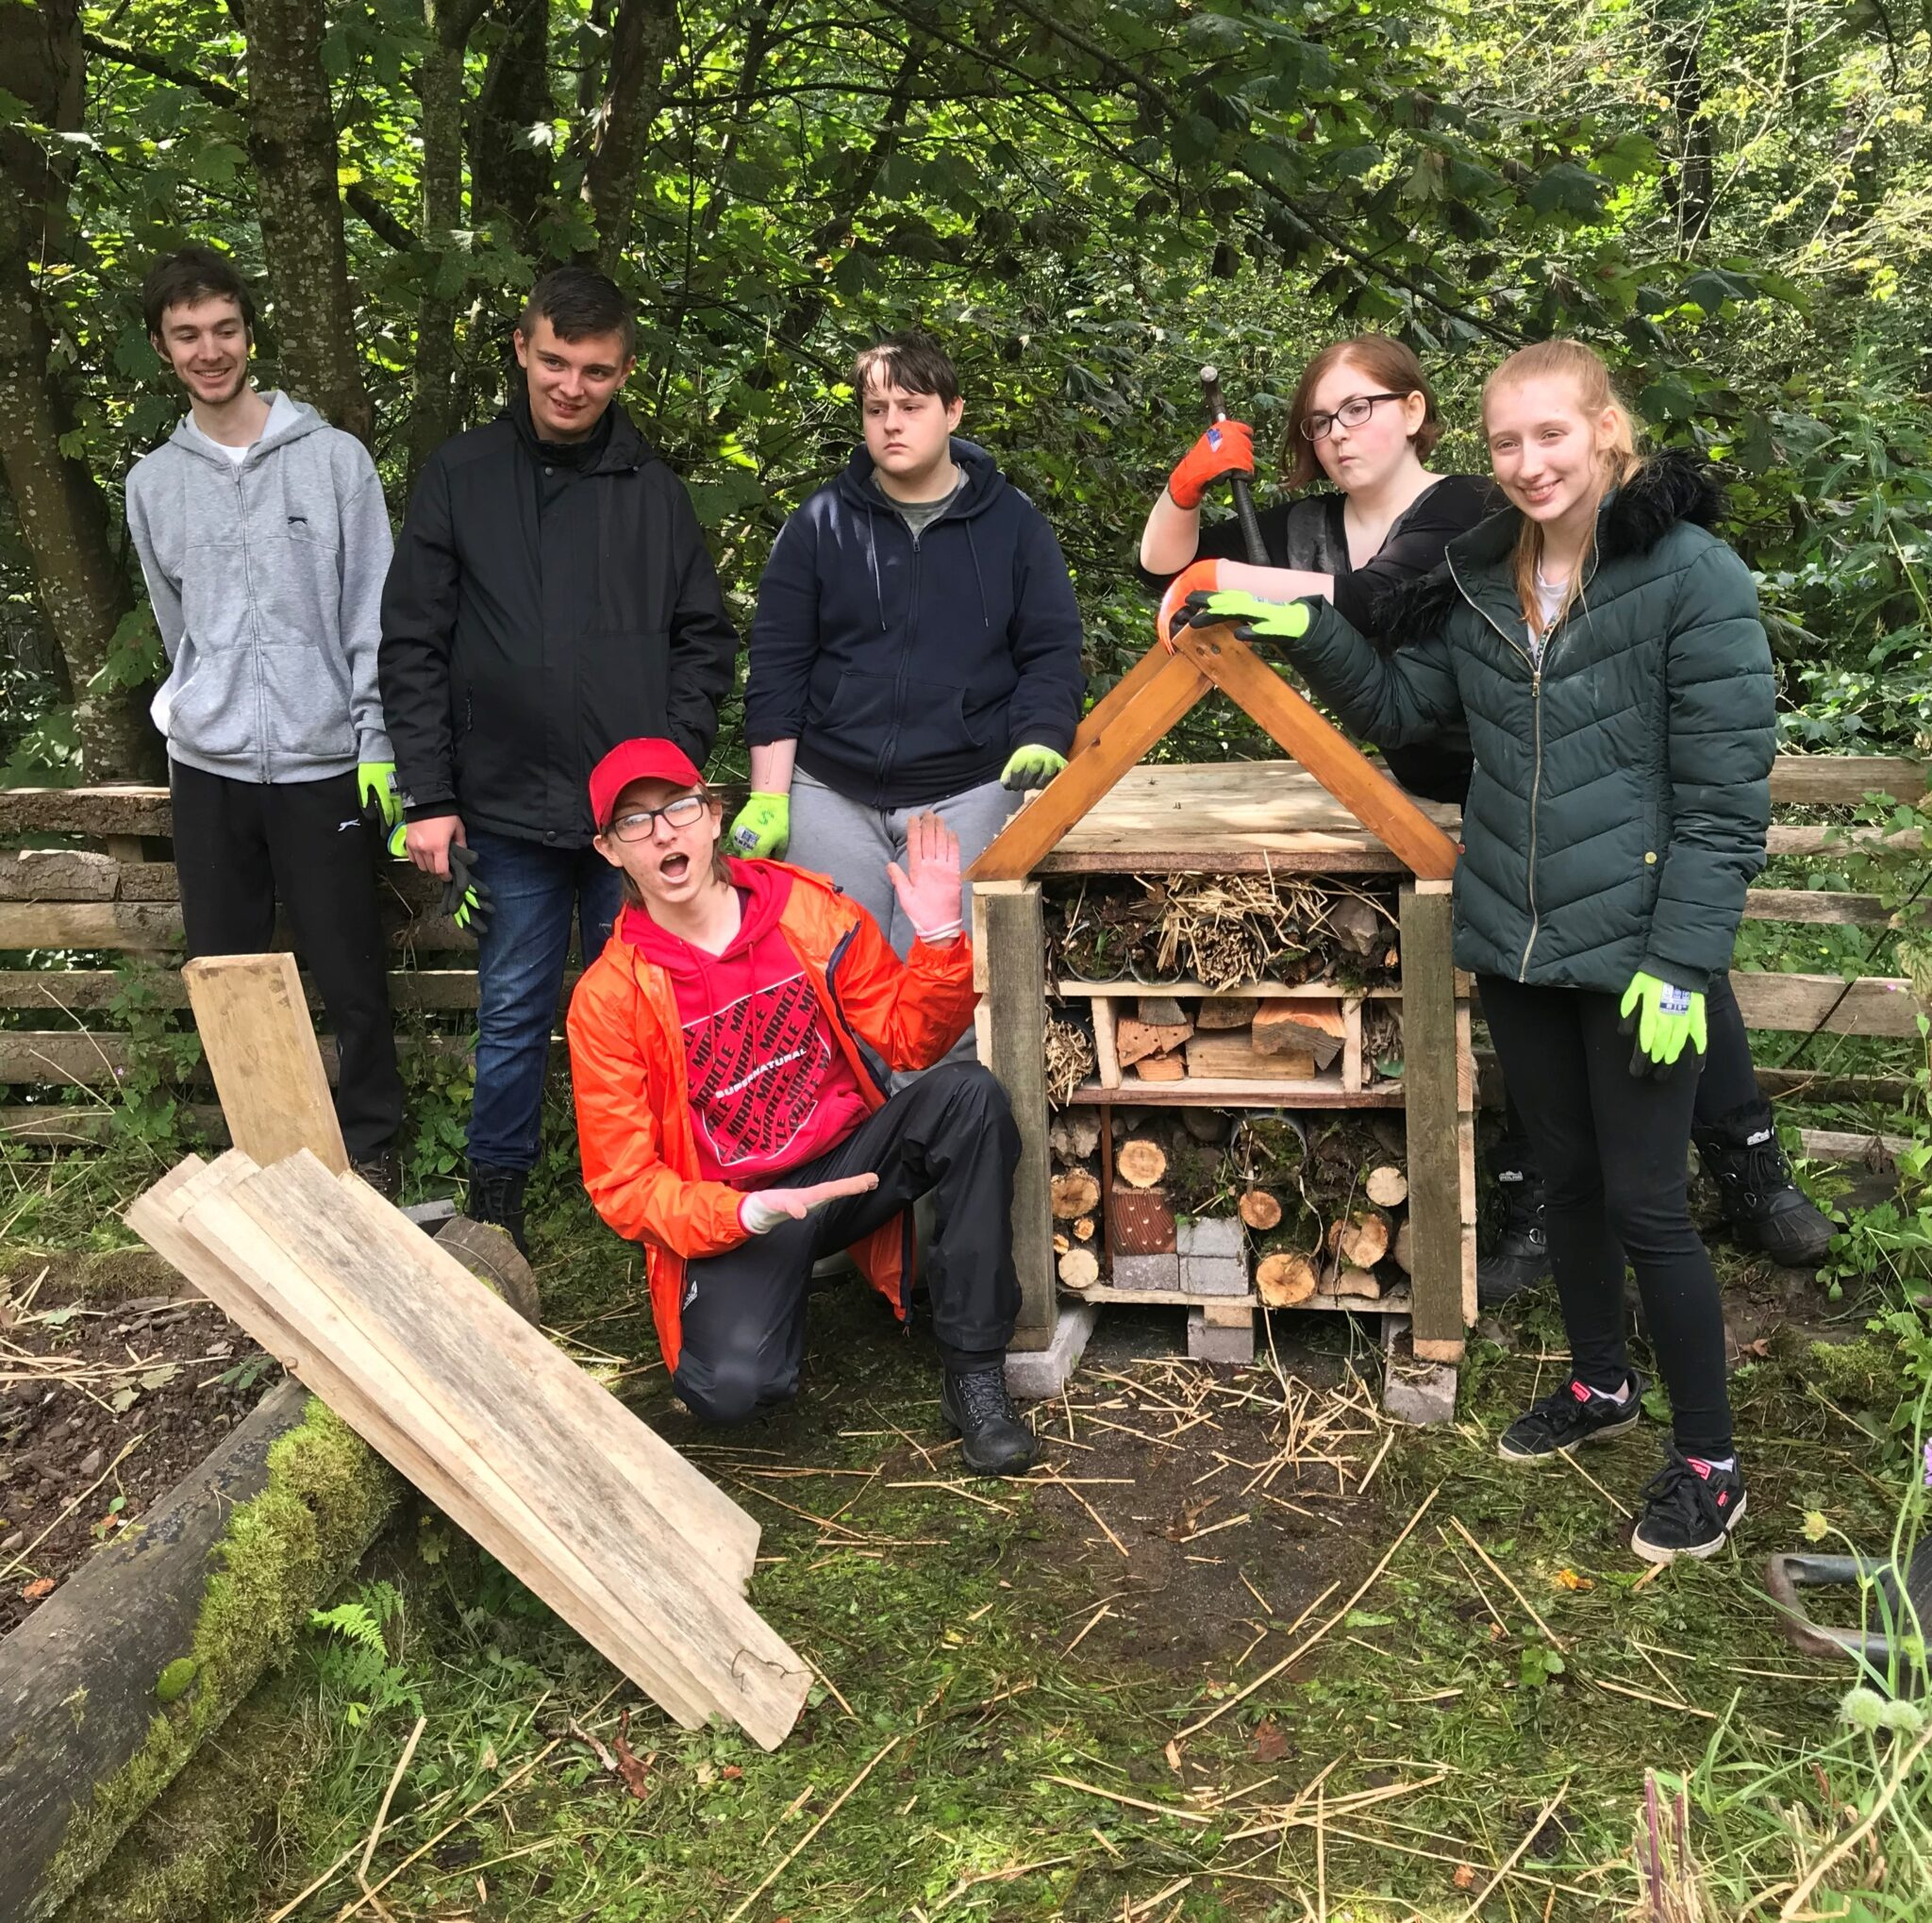 New Bug Hotel at the Falls of Clyde